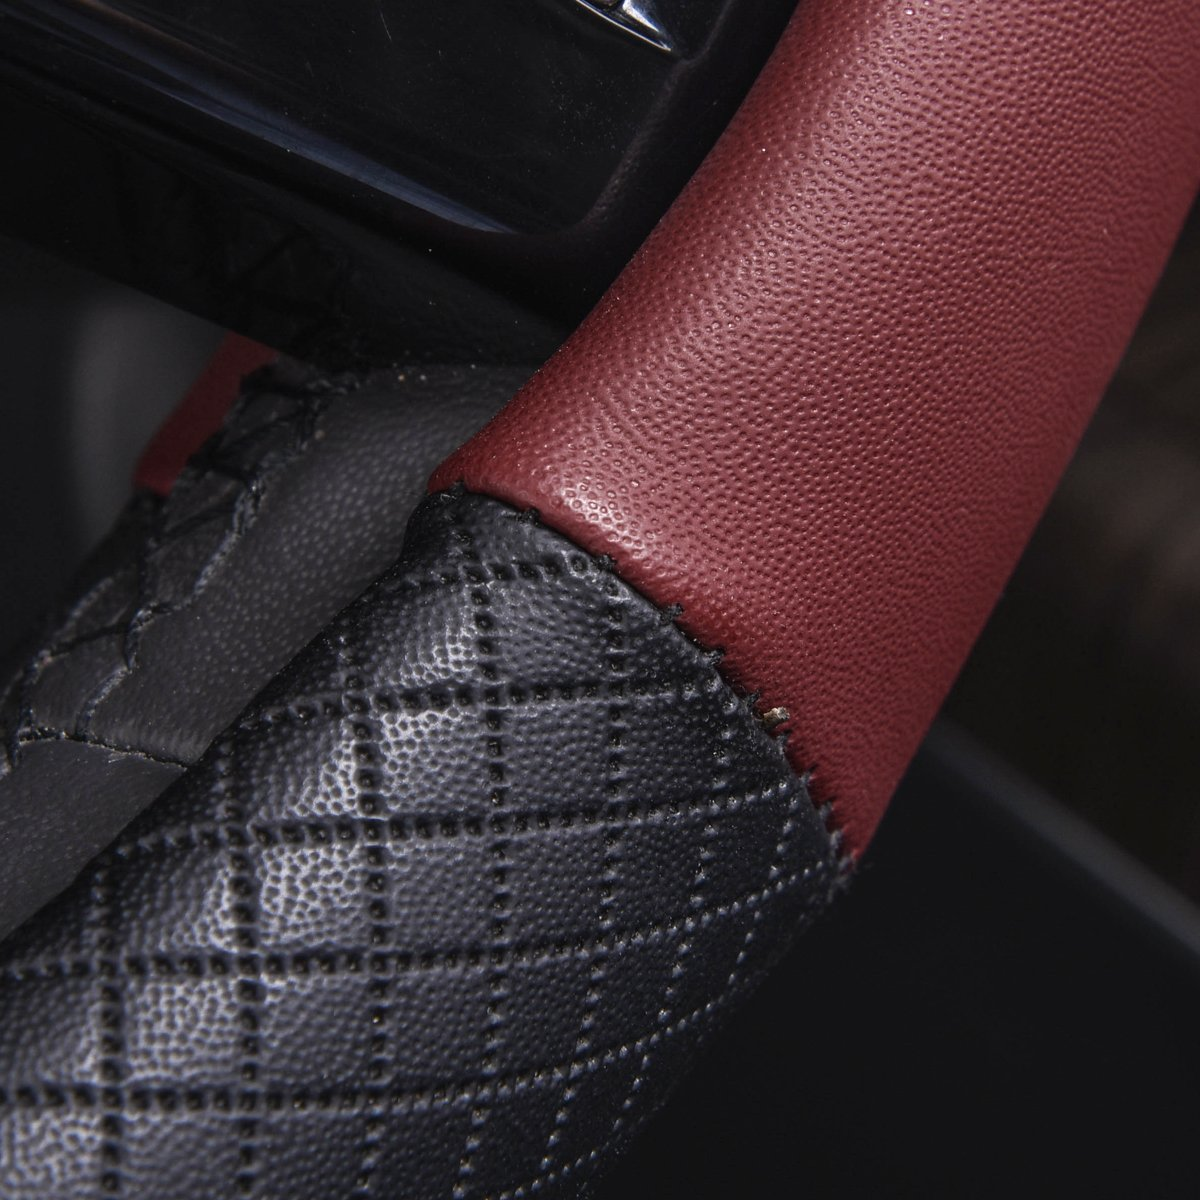 Black And Wine Red CAR PASS NEW ARRIVAL Rhombus Leather Universal Steering Wheel Cover fit for vehicles,Suv